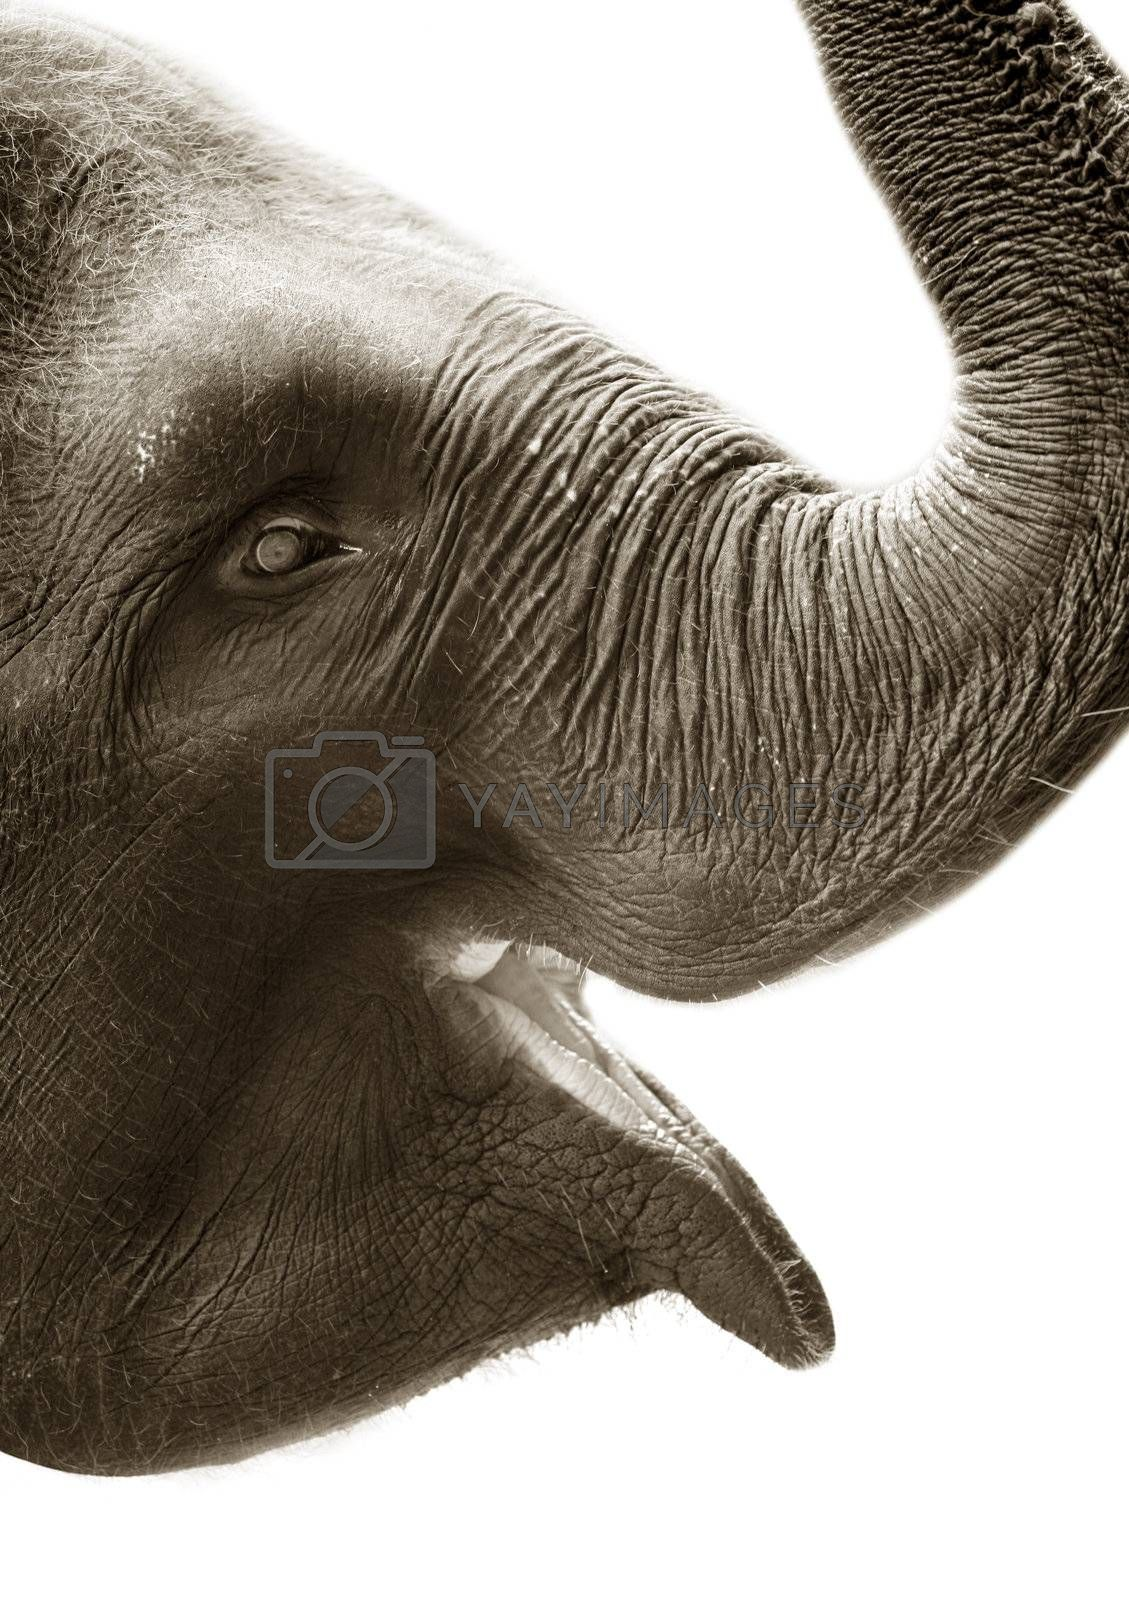 Portrait of the elephant close-up